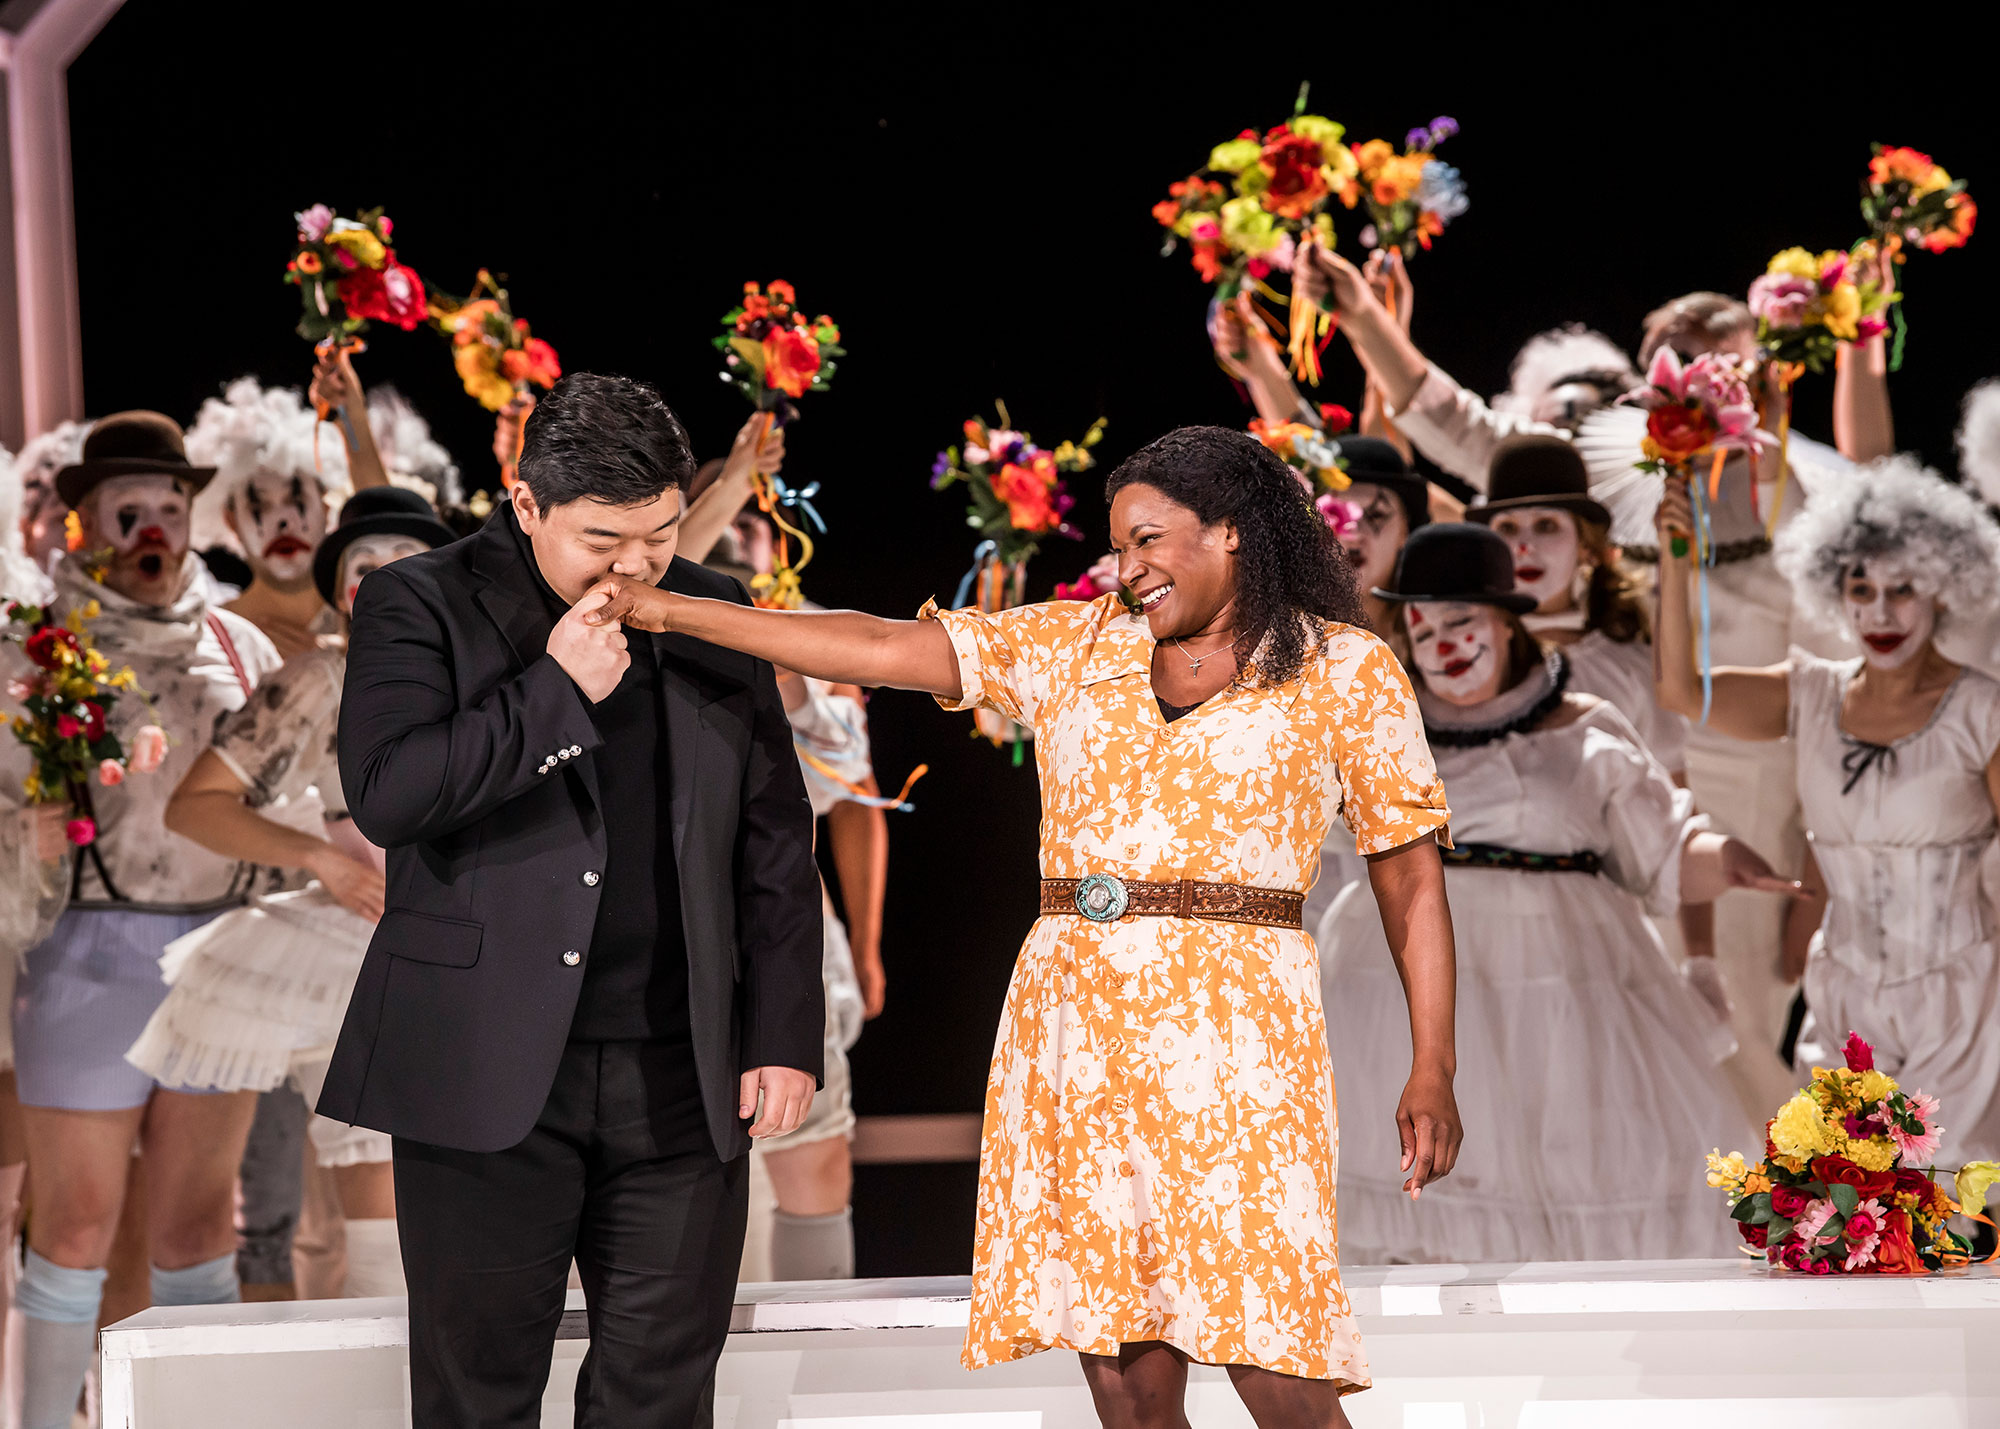 Rodolfo kisses Luisa's outstretched arm, with a macabre crowd holding flowers behind